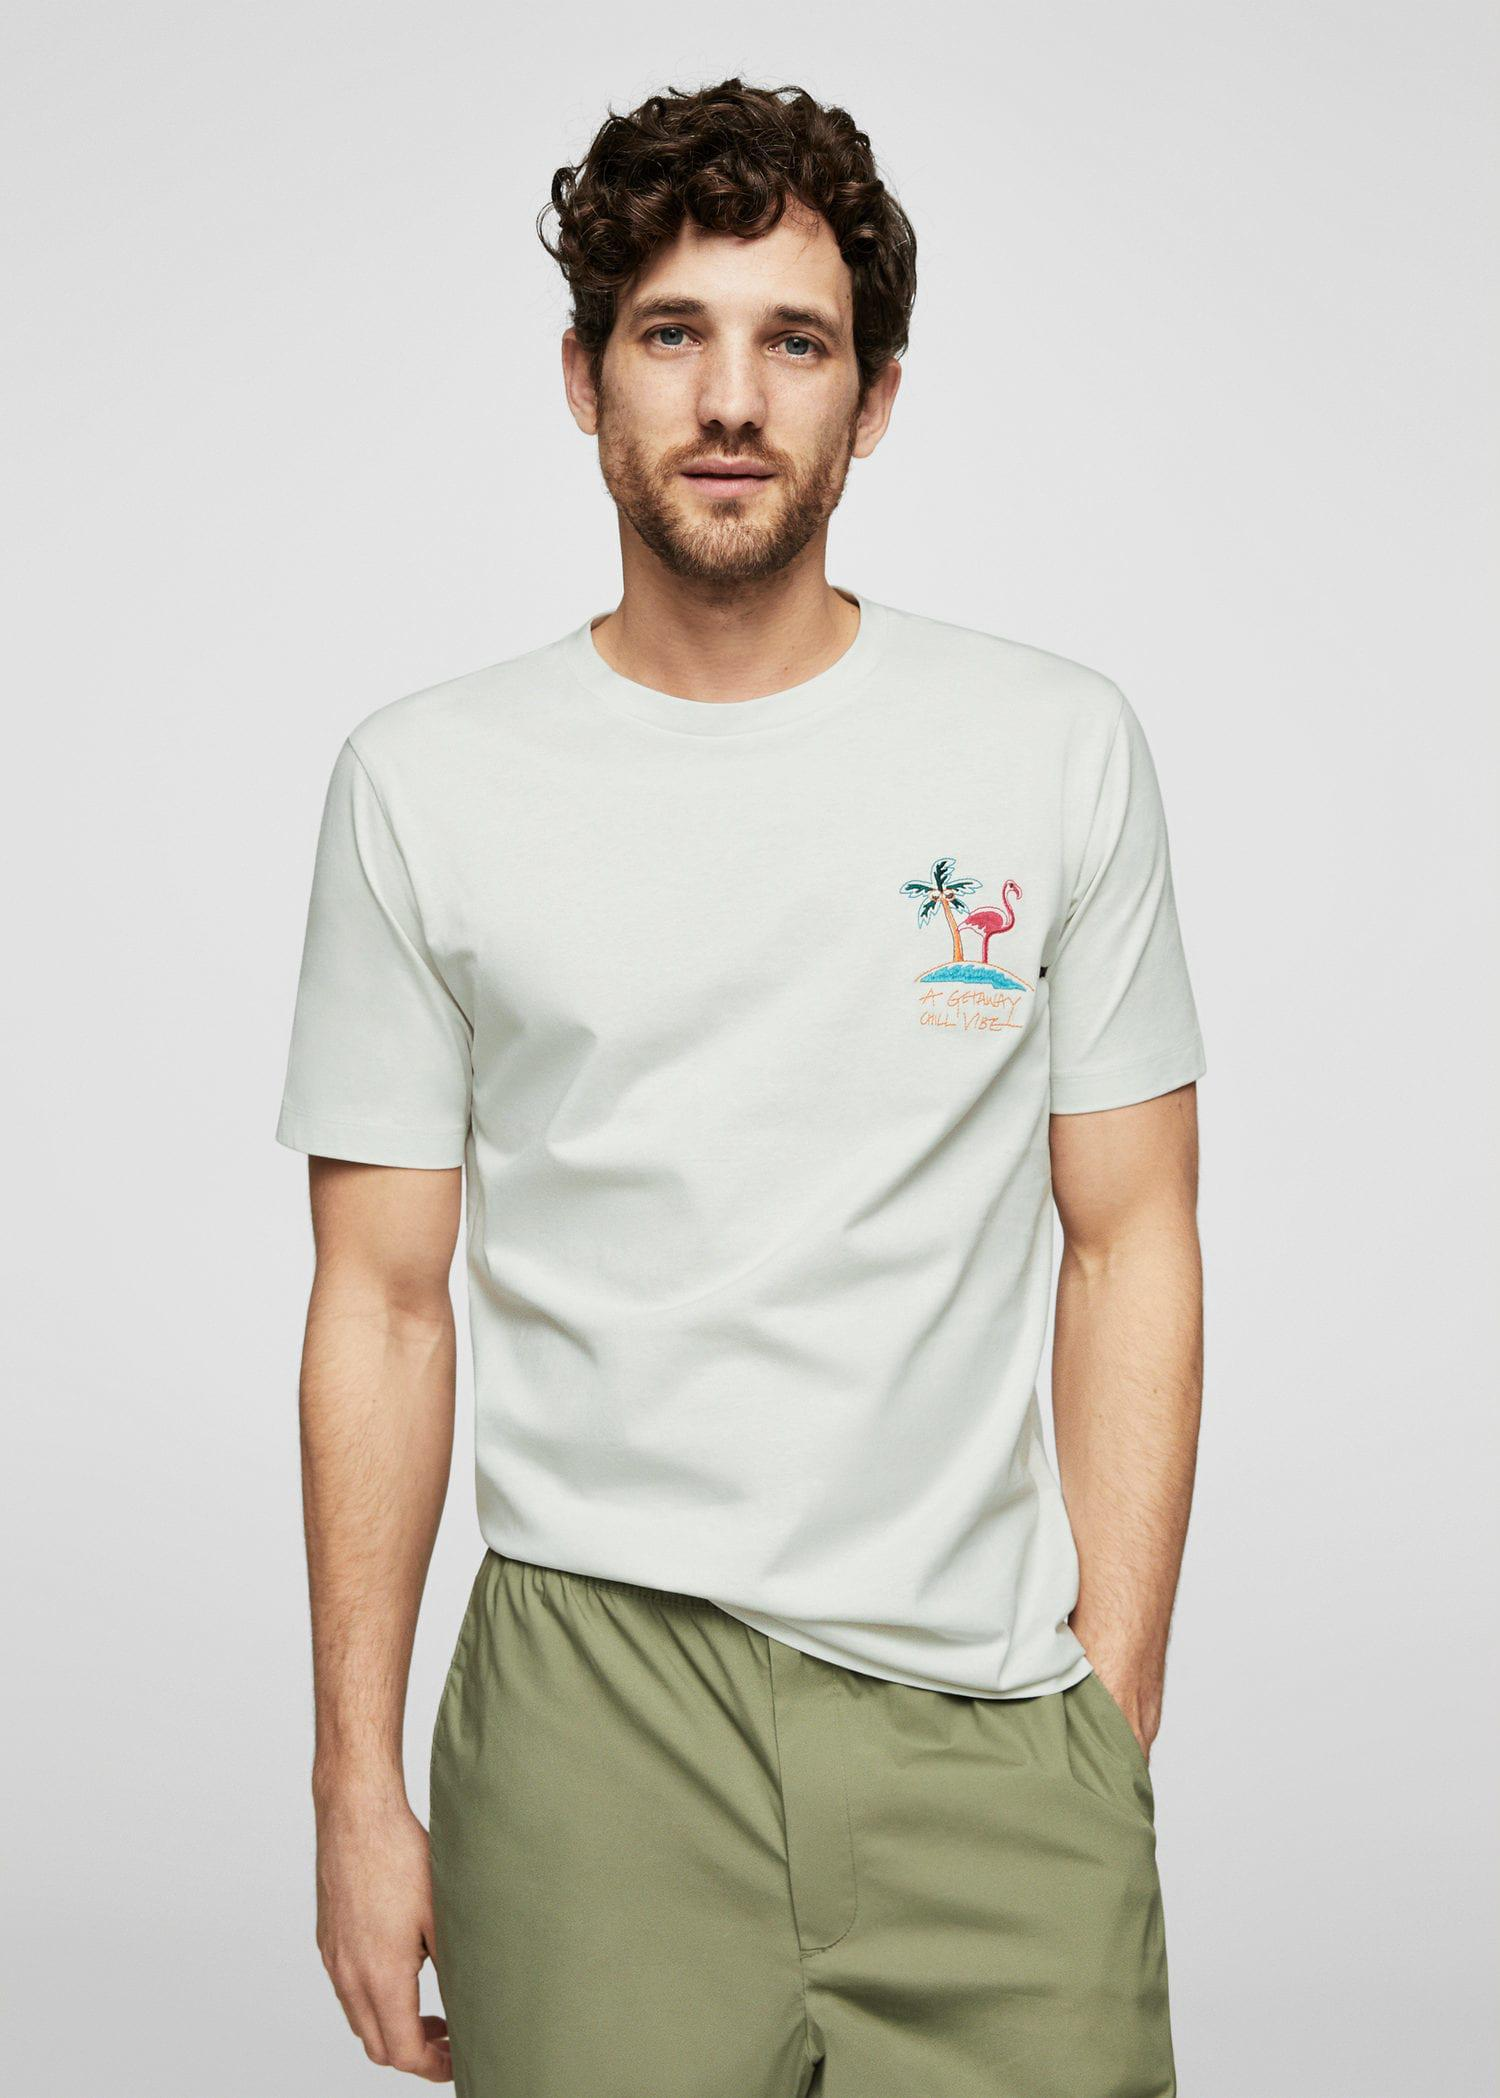 Footlocker For Sale Man Embroidered T-Shirt In White - White Mango Sale Choice Fast Express Cheap Footlocker 1pQmZFBuTM